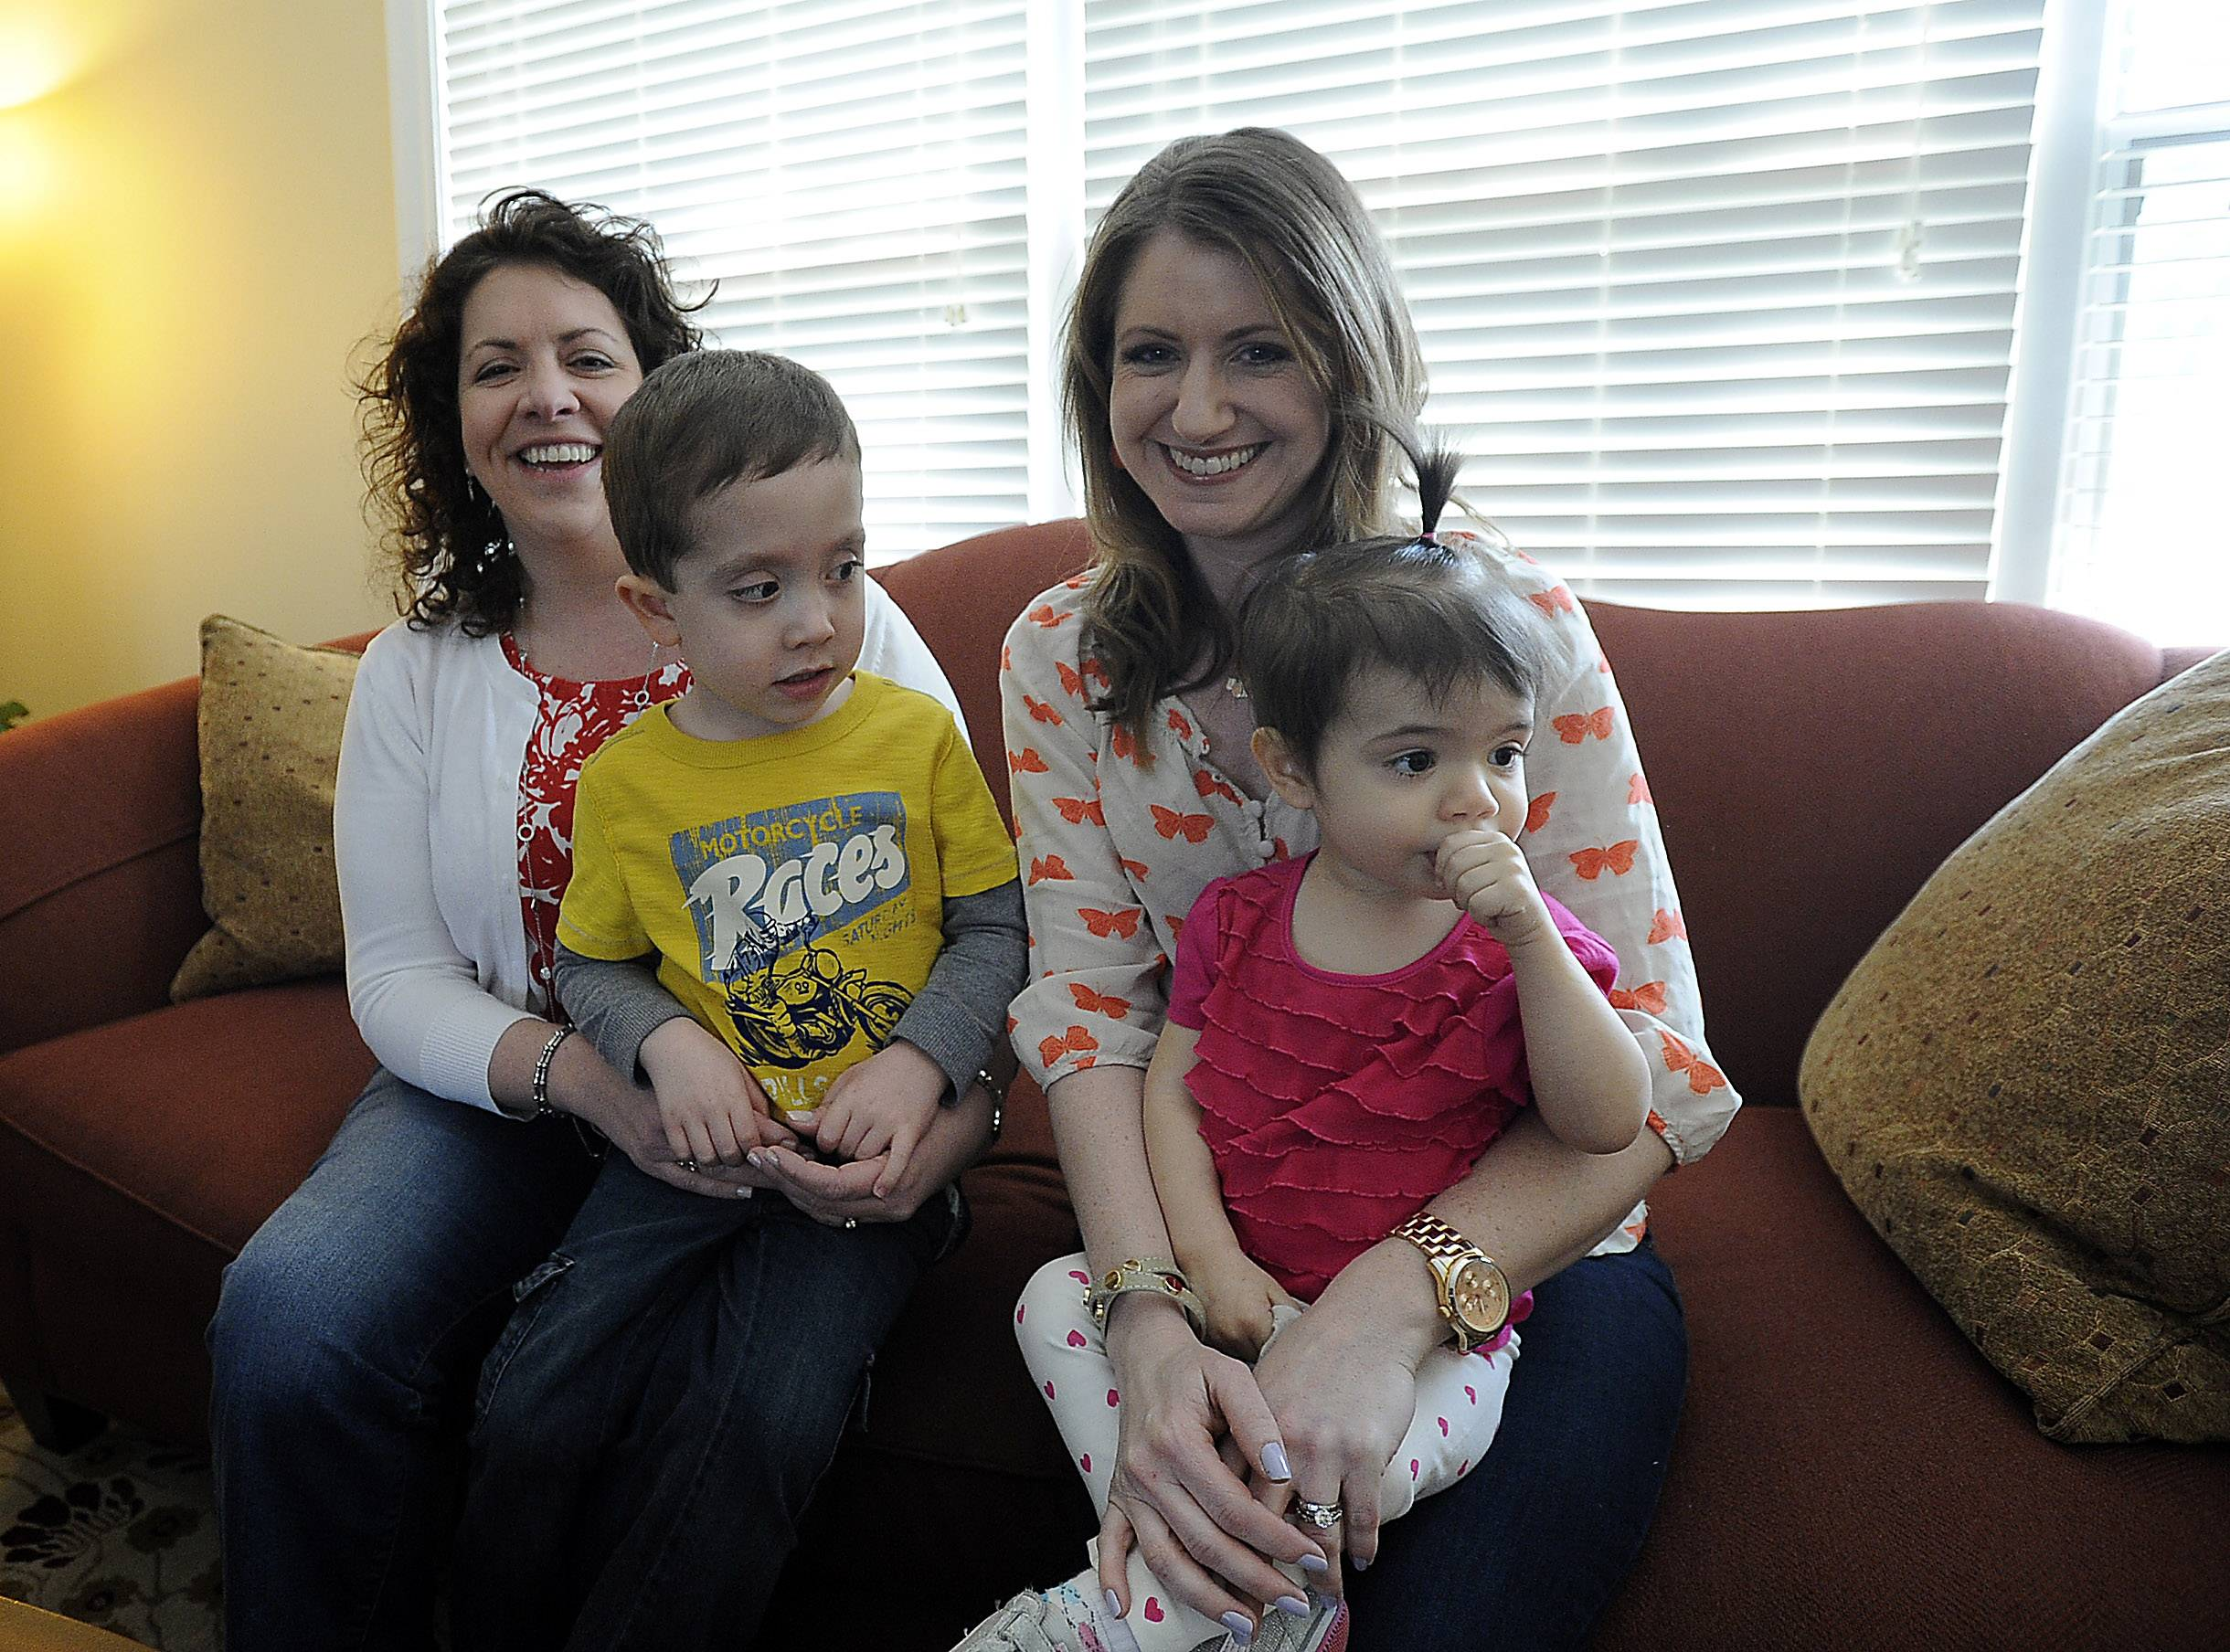 Jenn Licato of Arlington Heights, holding her 22-month-old daughter, Audrey, and Kristin Meek, with her son, Ben, 5, talking about their efforts to raise money for neurofibromatosis research.